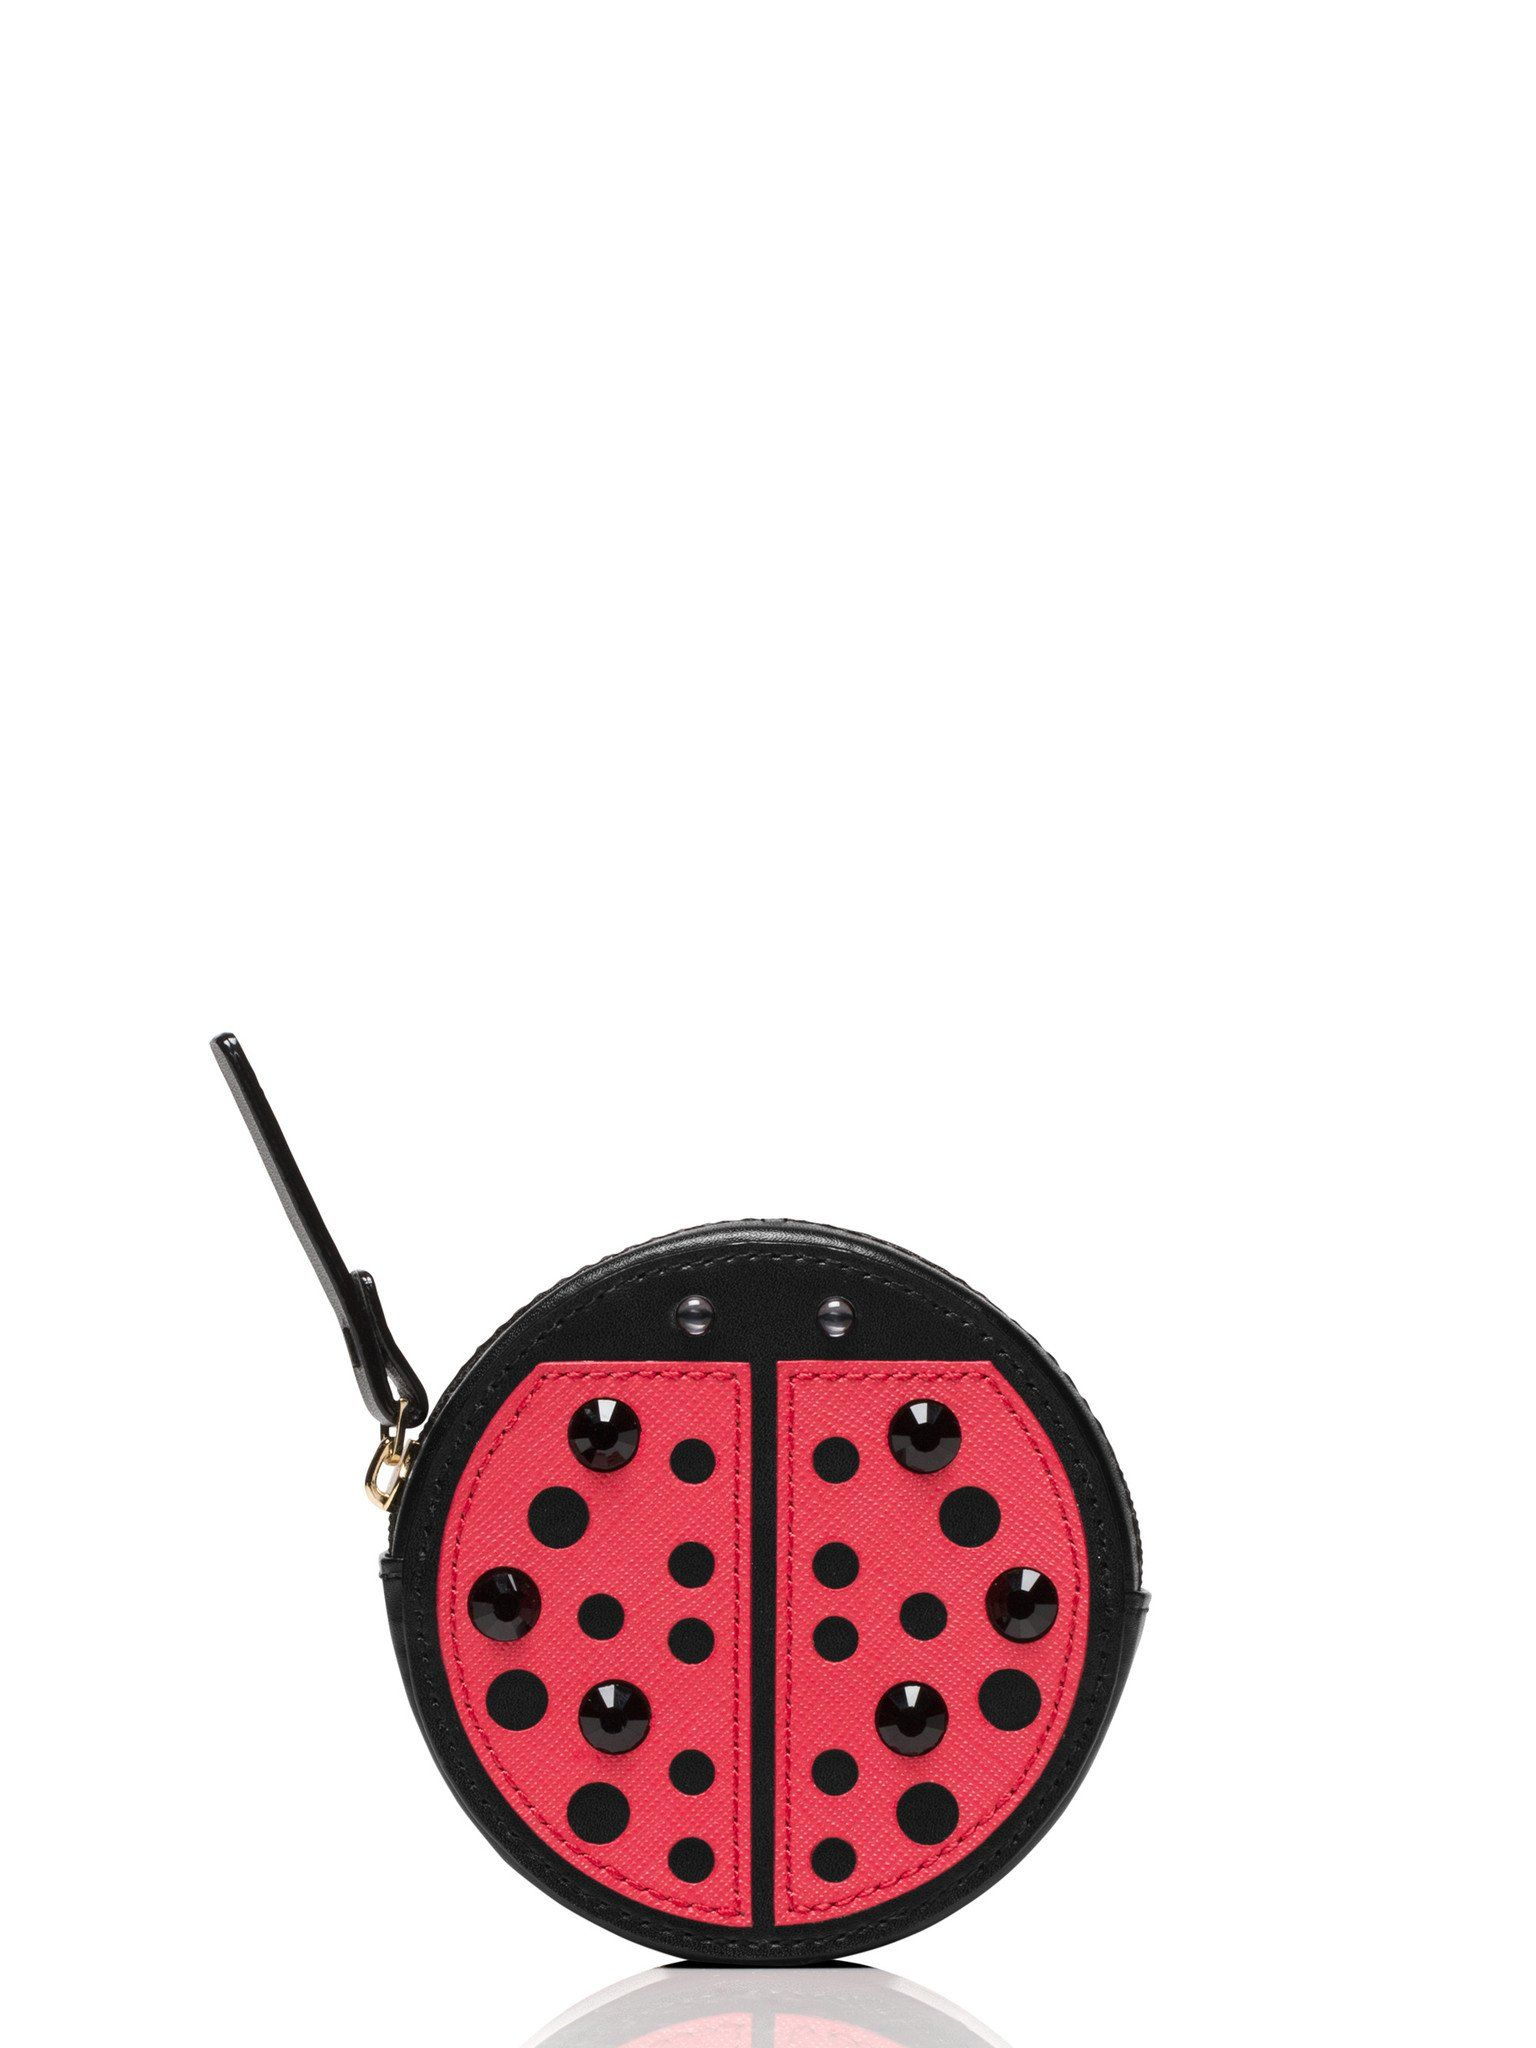 44b0971f96d2 Kate Spade turn over a new leaf ladybug coin purse in 2019 ...